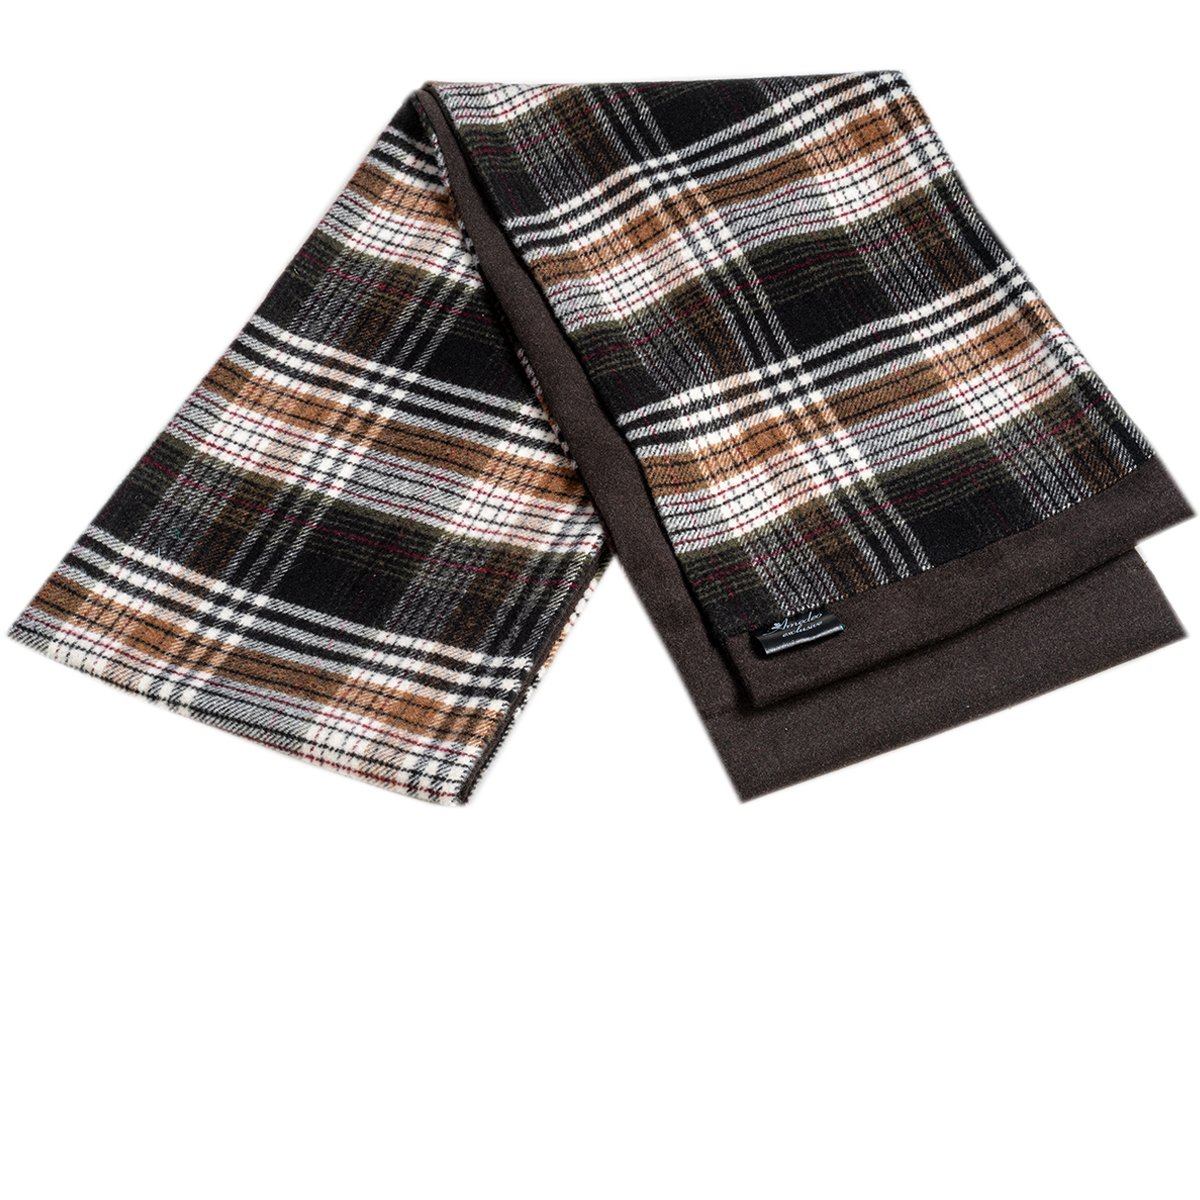 Men Microfiber Soft Comfortable Black Brown Check Wool Scarf - Amedeo Exclusive